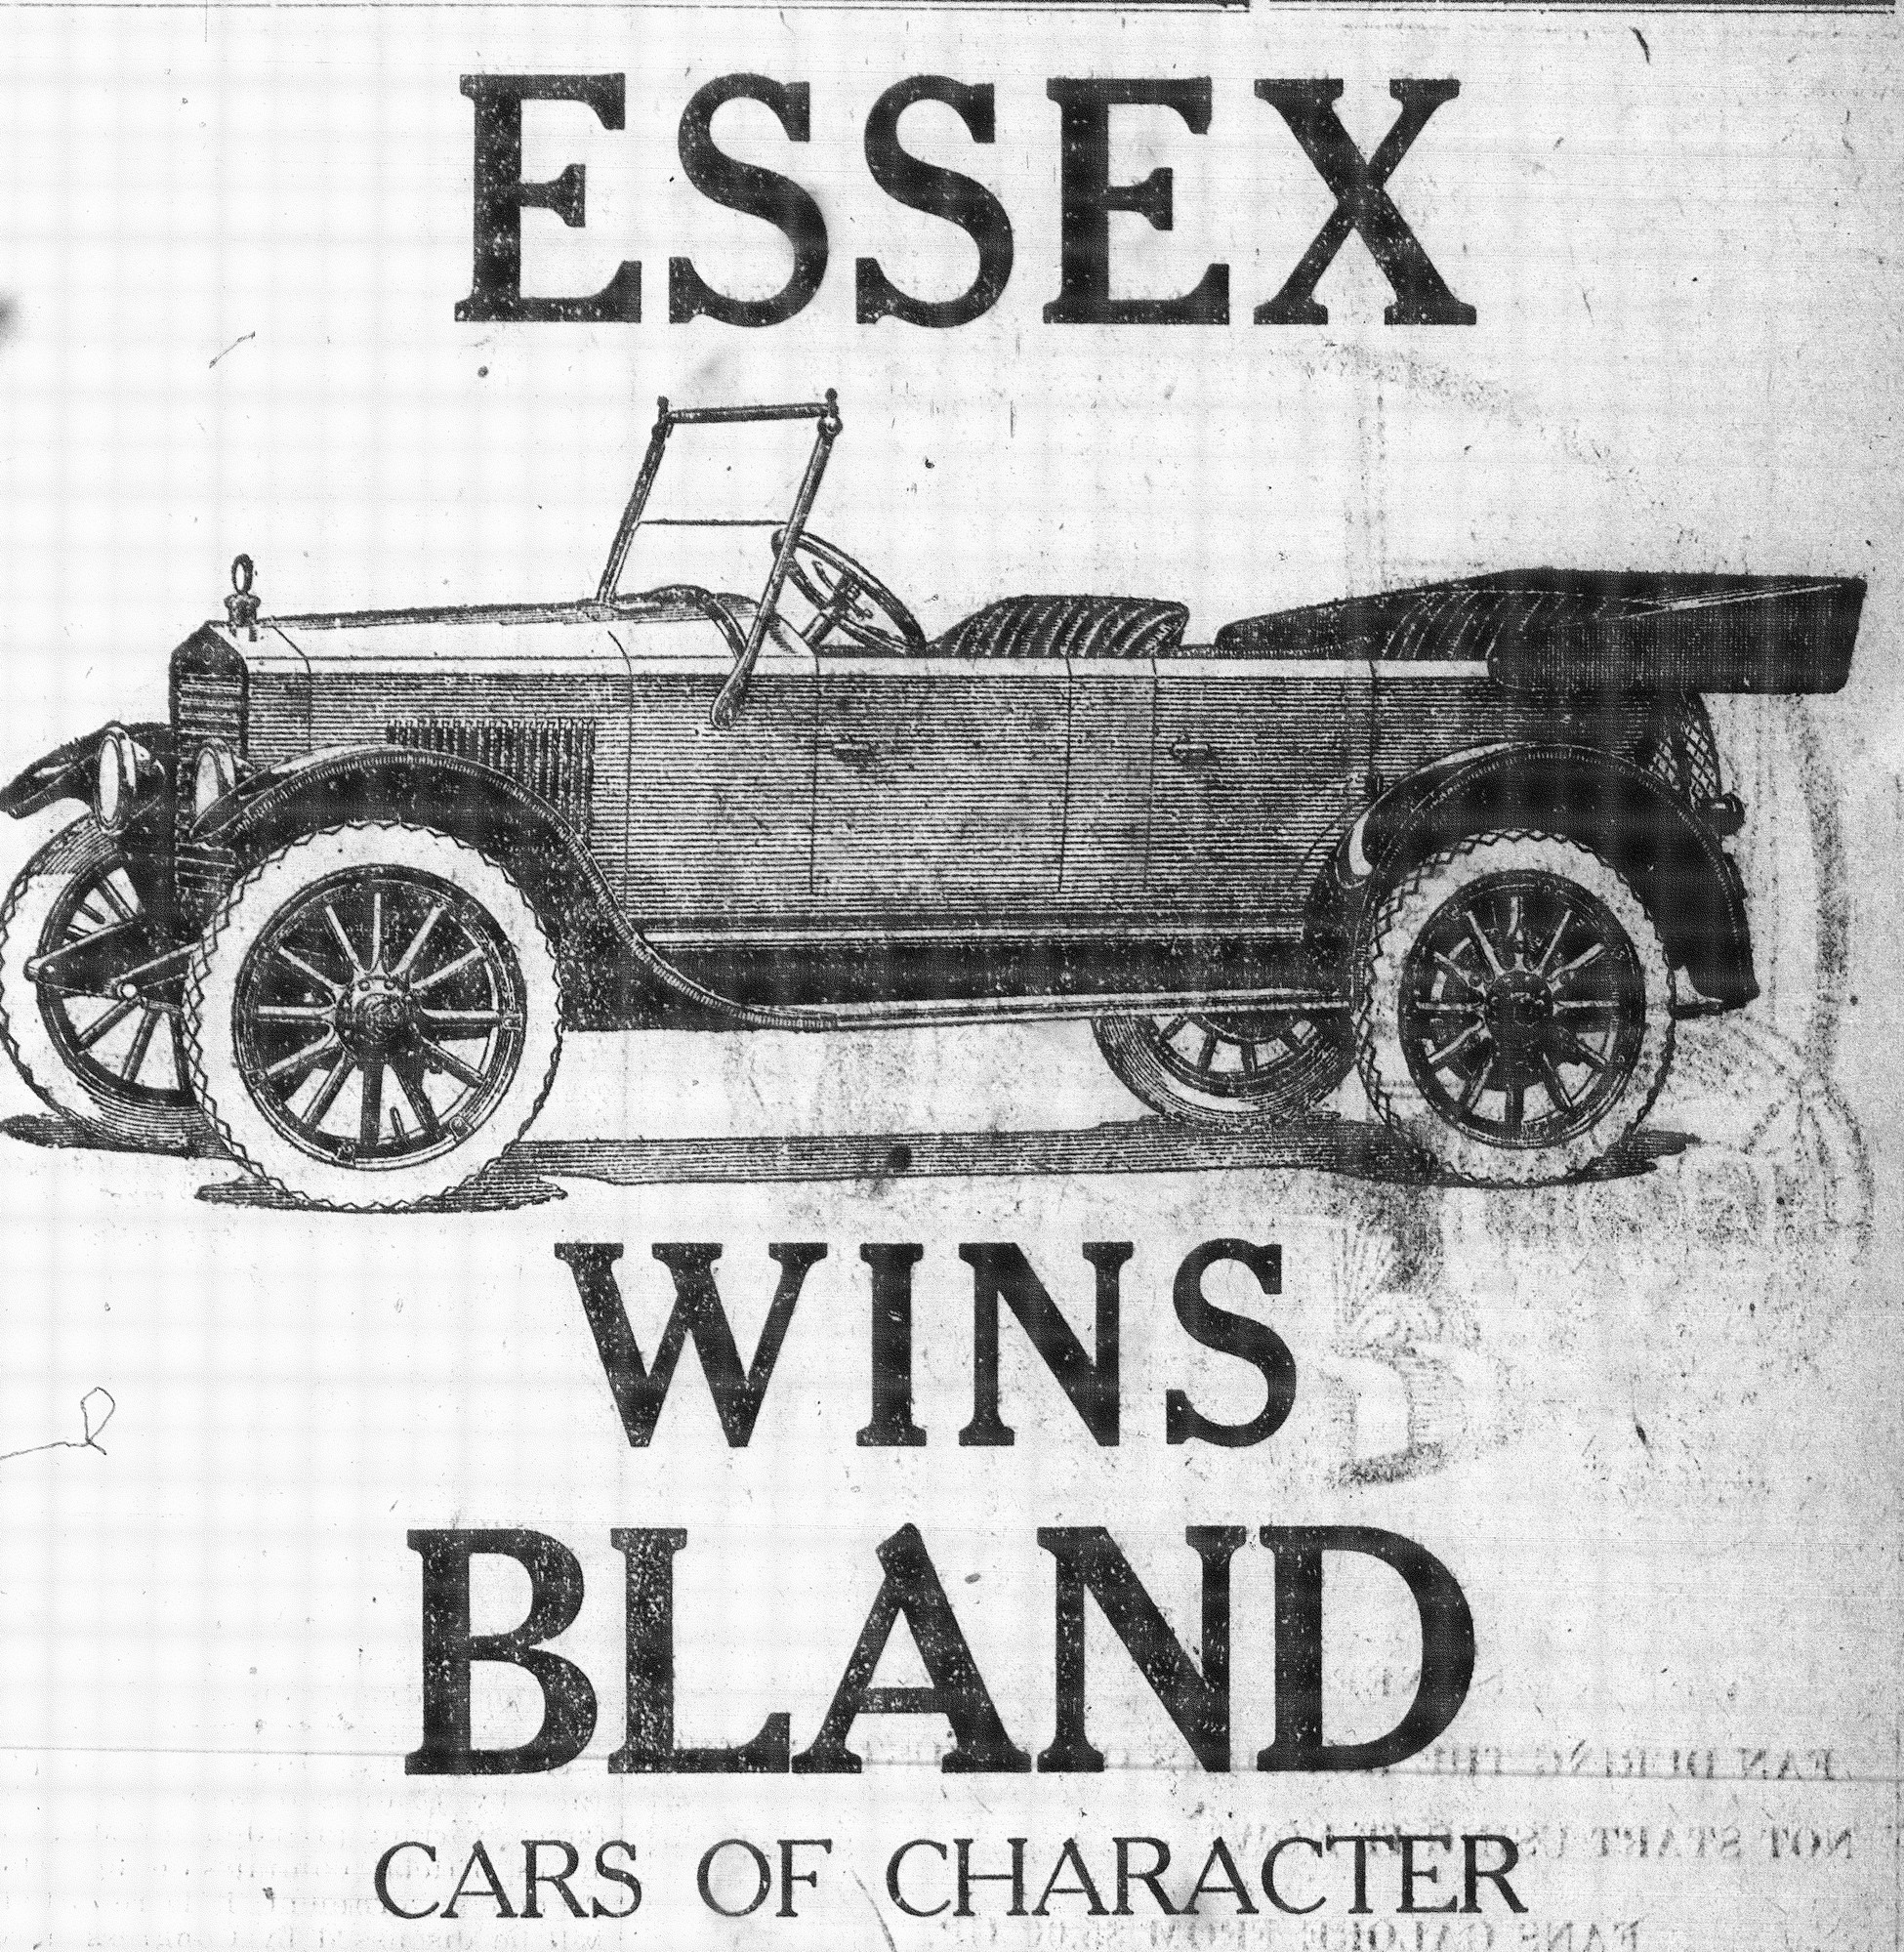 H. C. Bland was a distributor for the Essex and other vehicles in Sumter in 1917.